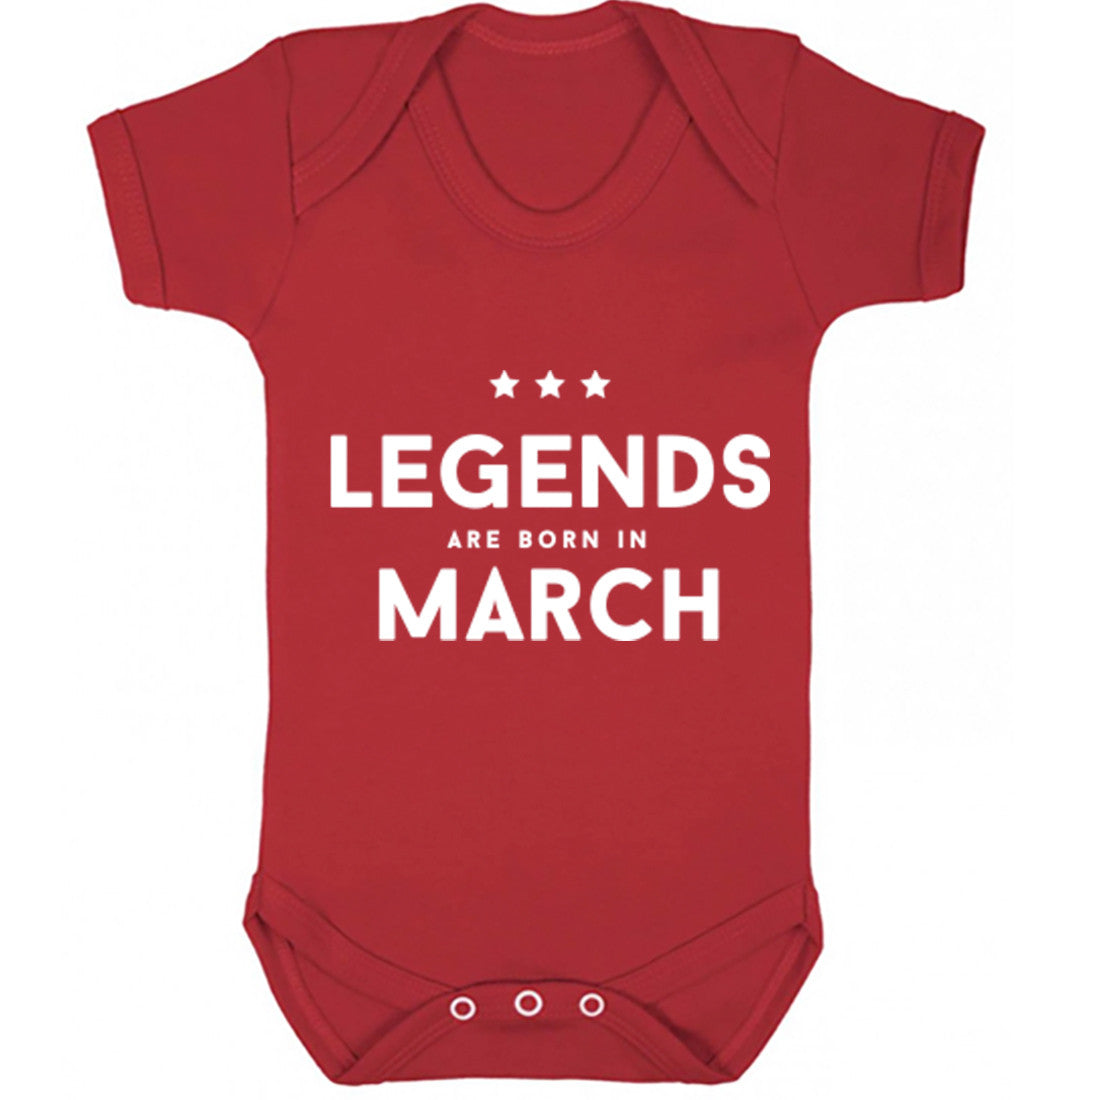 Legends Are Born In March Baby Vest K1421 - Illustrated Identity Ltd.